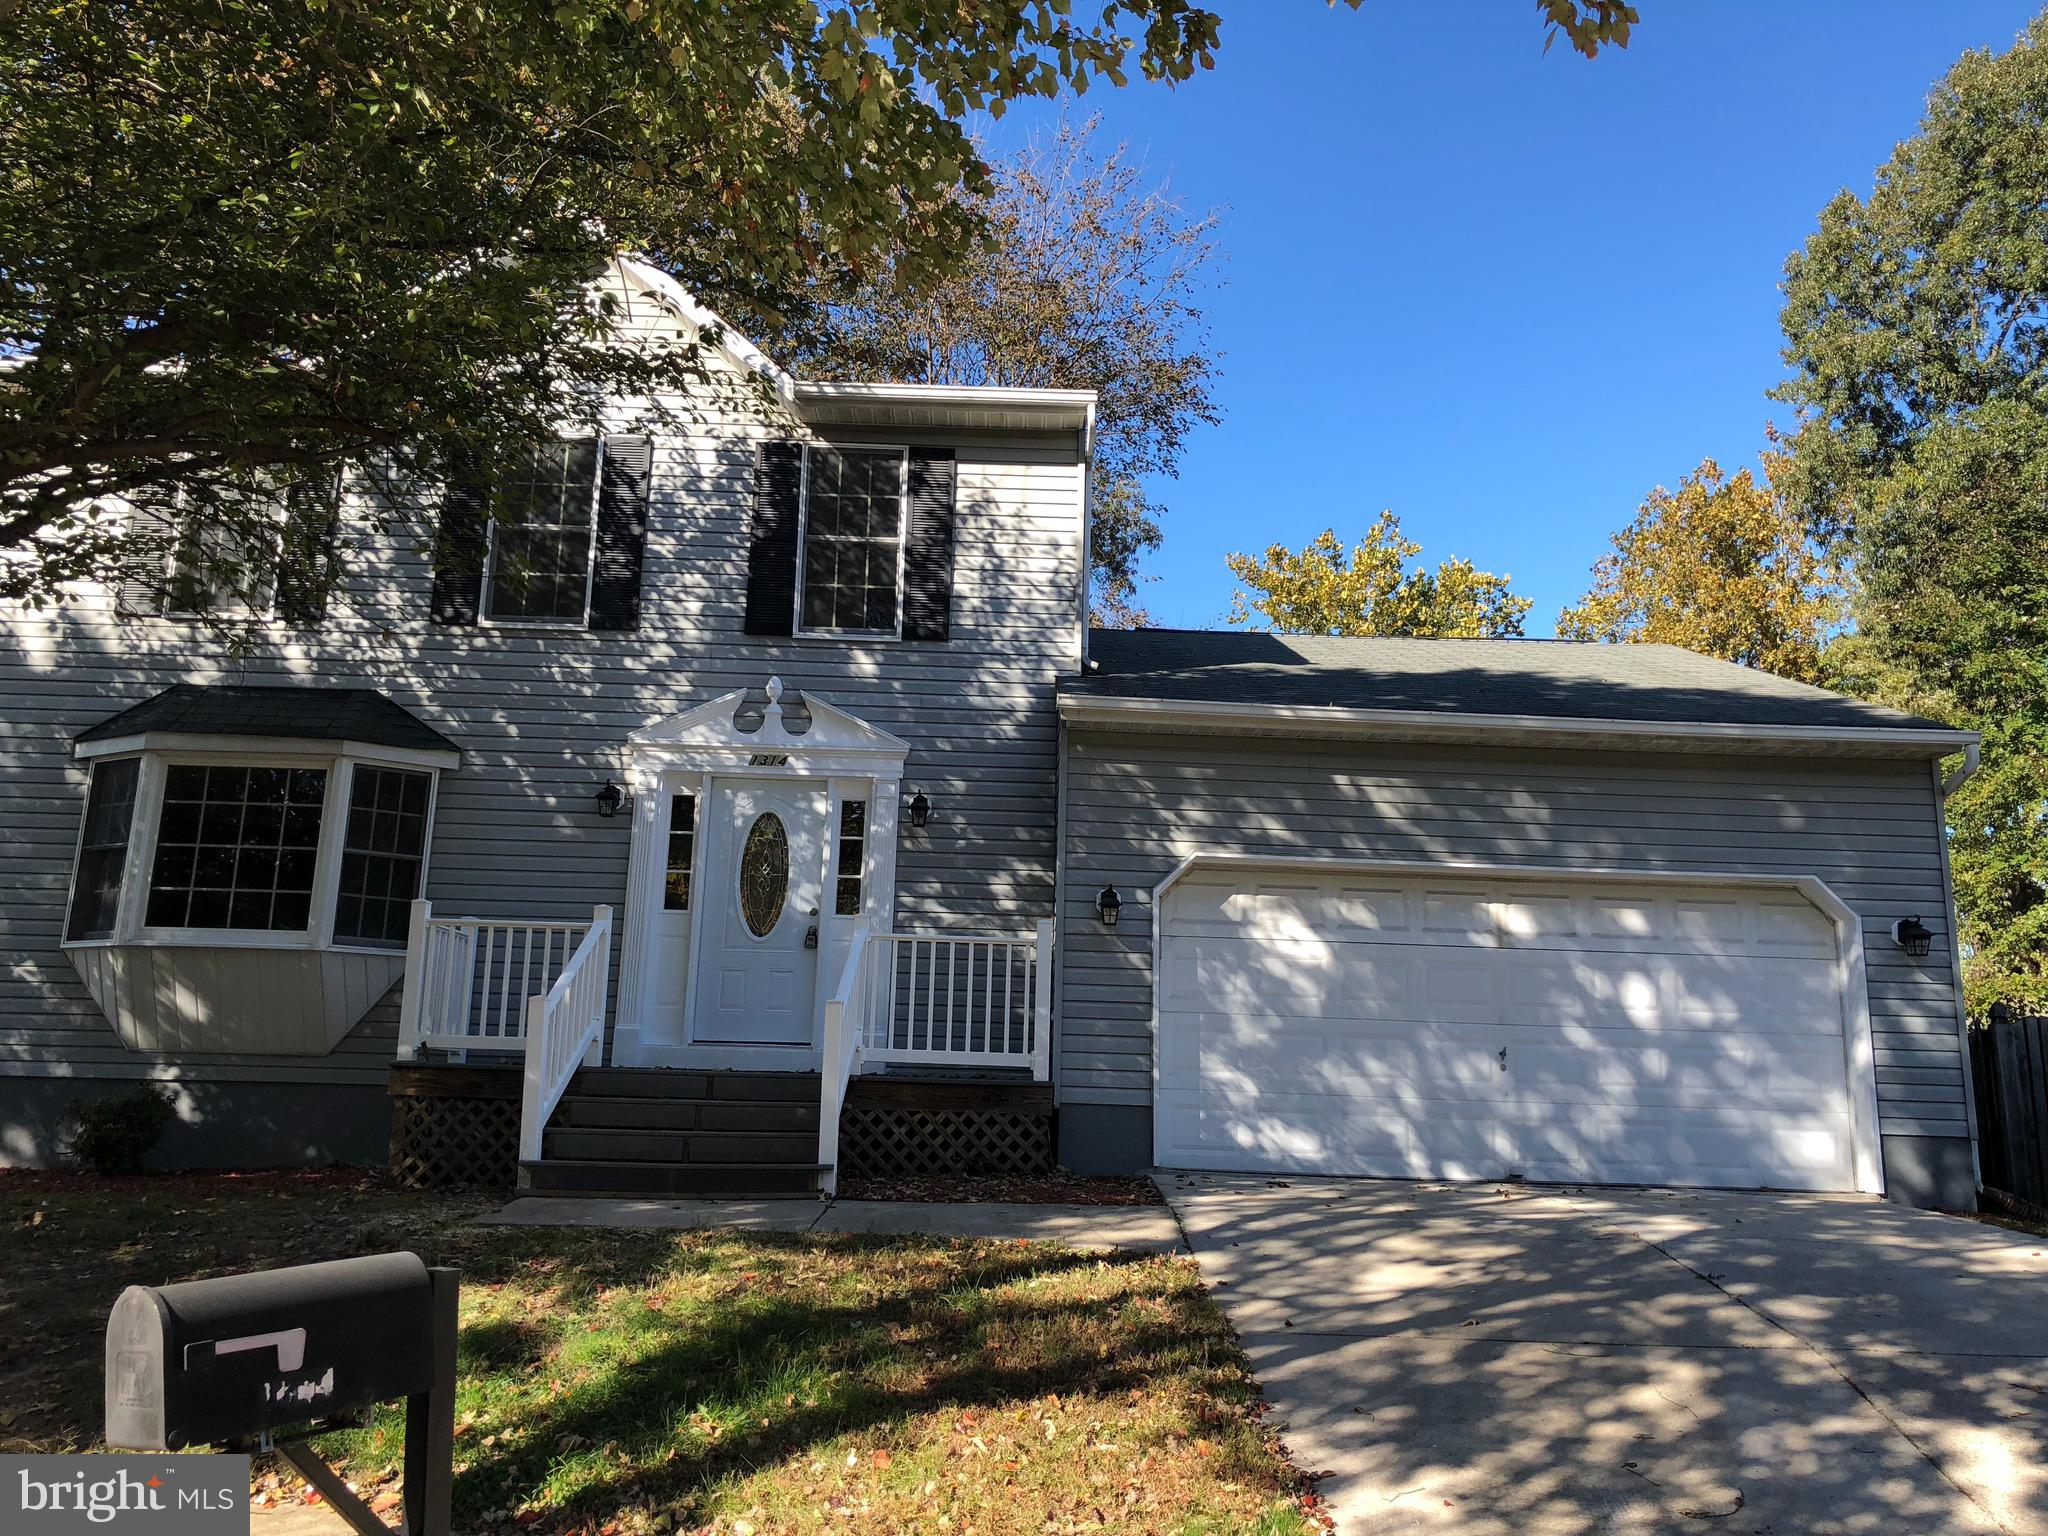 Beautifully renovated ~ 4 bedrooms ~ 3 full bathrooms ~ 1 half bath ~ Modern home ~ Brand new stainless steel appliances, hardwood flooring, and more! Come and see for yourself!